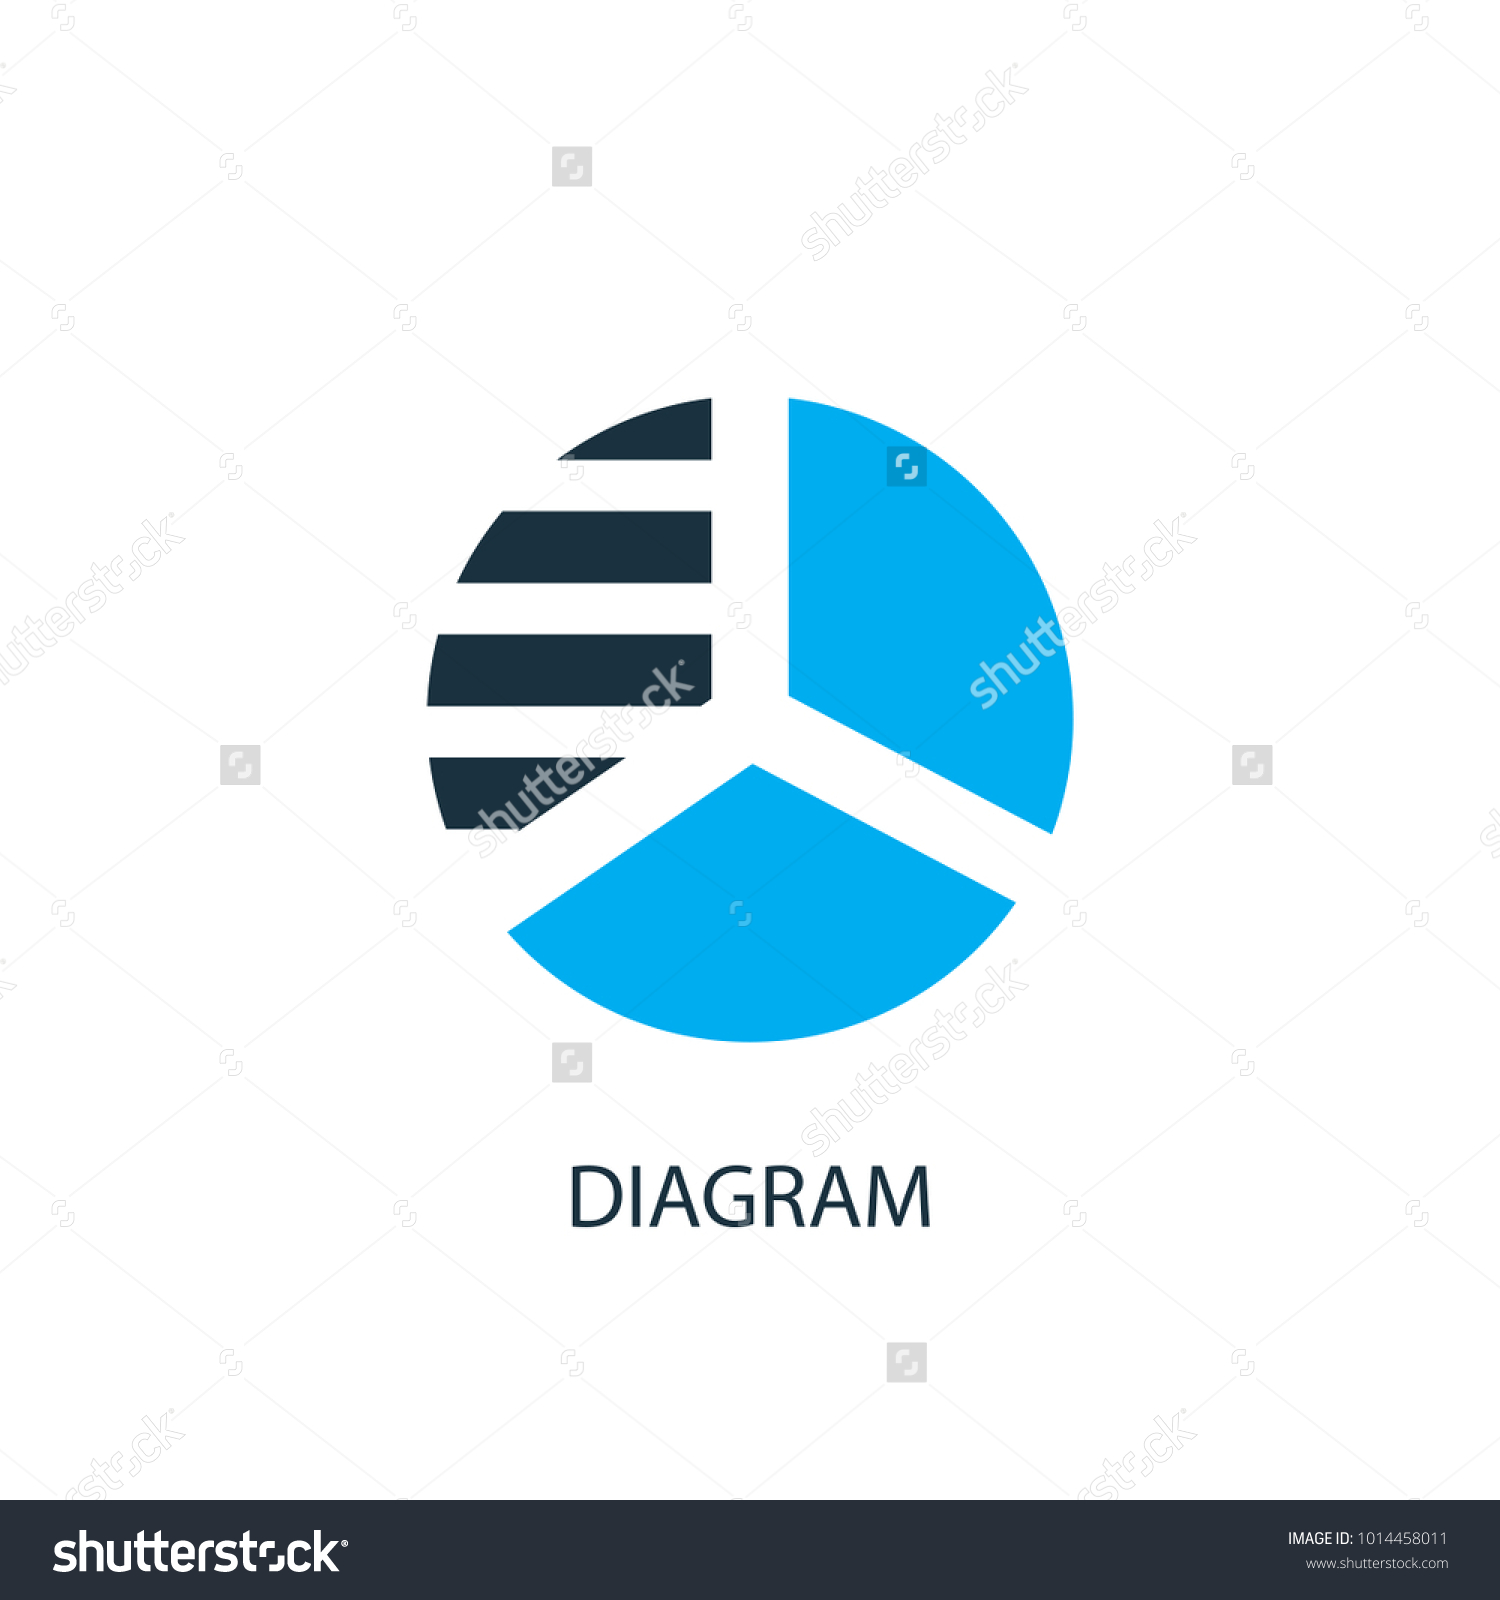 hight resolution of diagram icon logo element illustration diagram symbol design from 2 colored collection simple